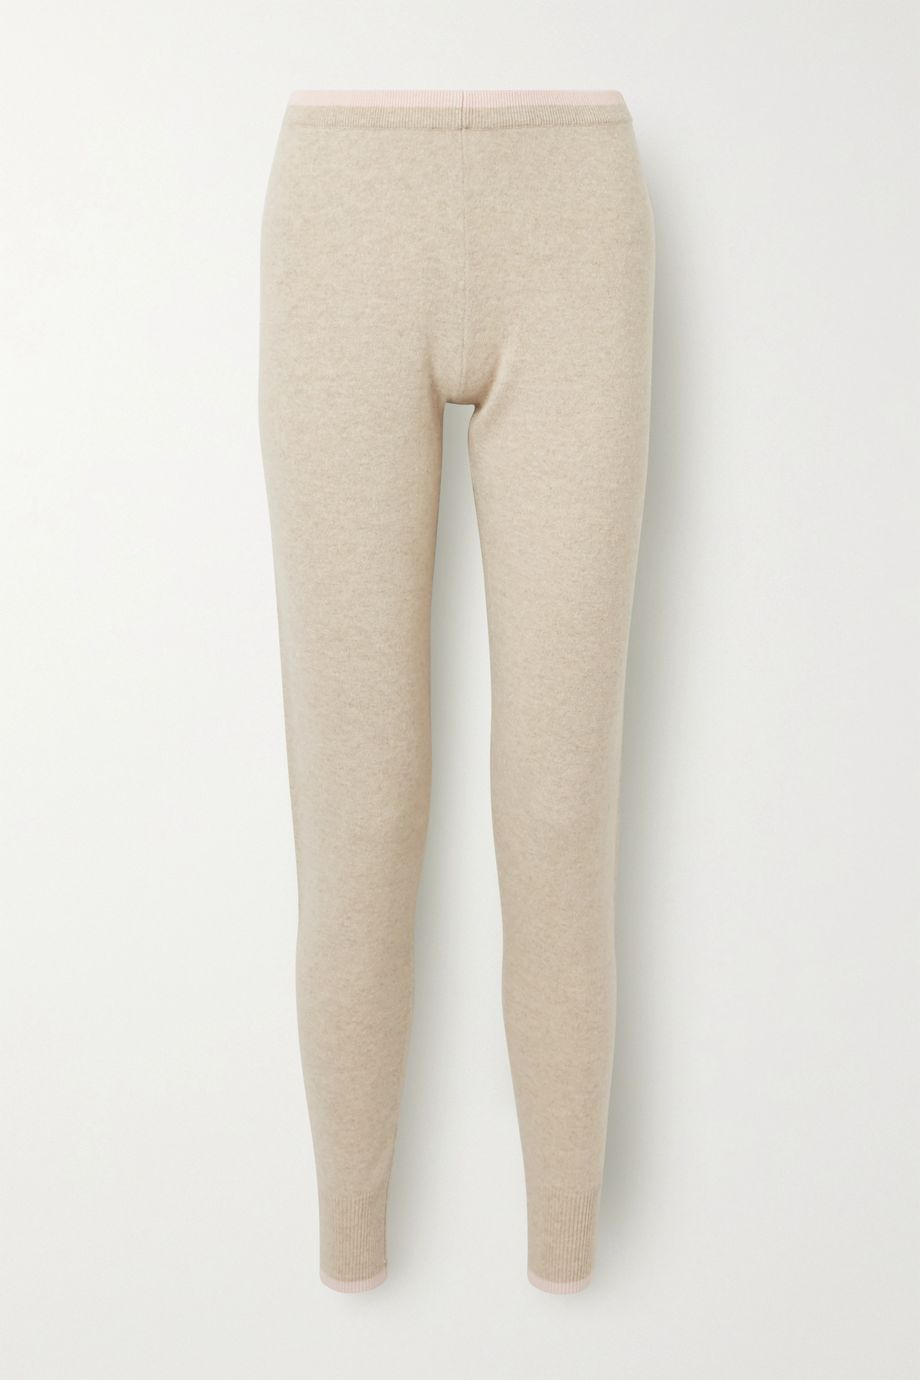 Madeleine Thompson Plutus two-tone cashmere track pants